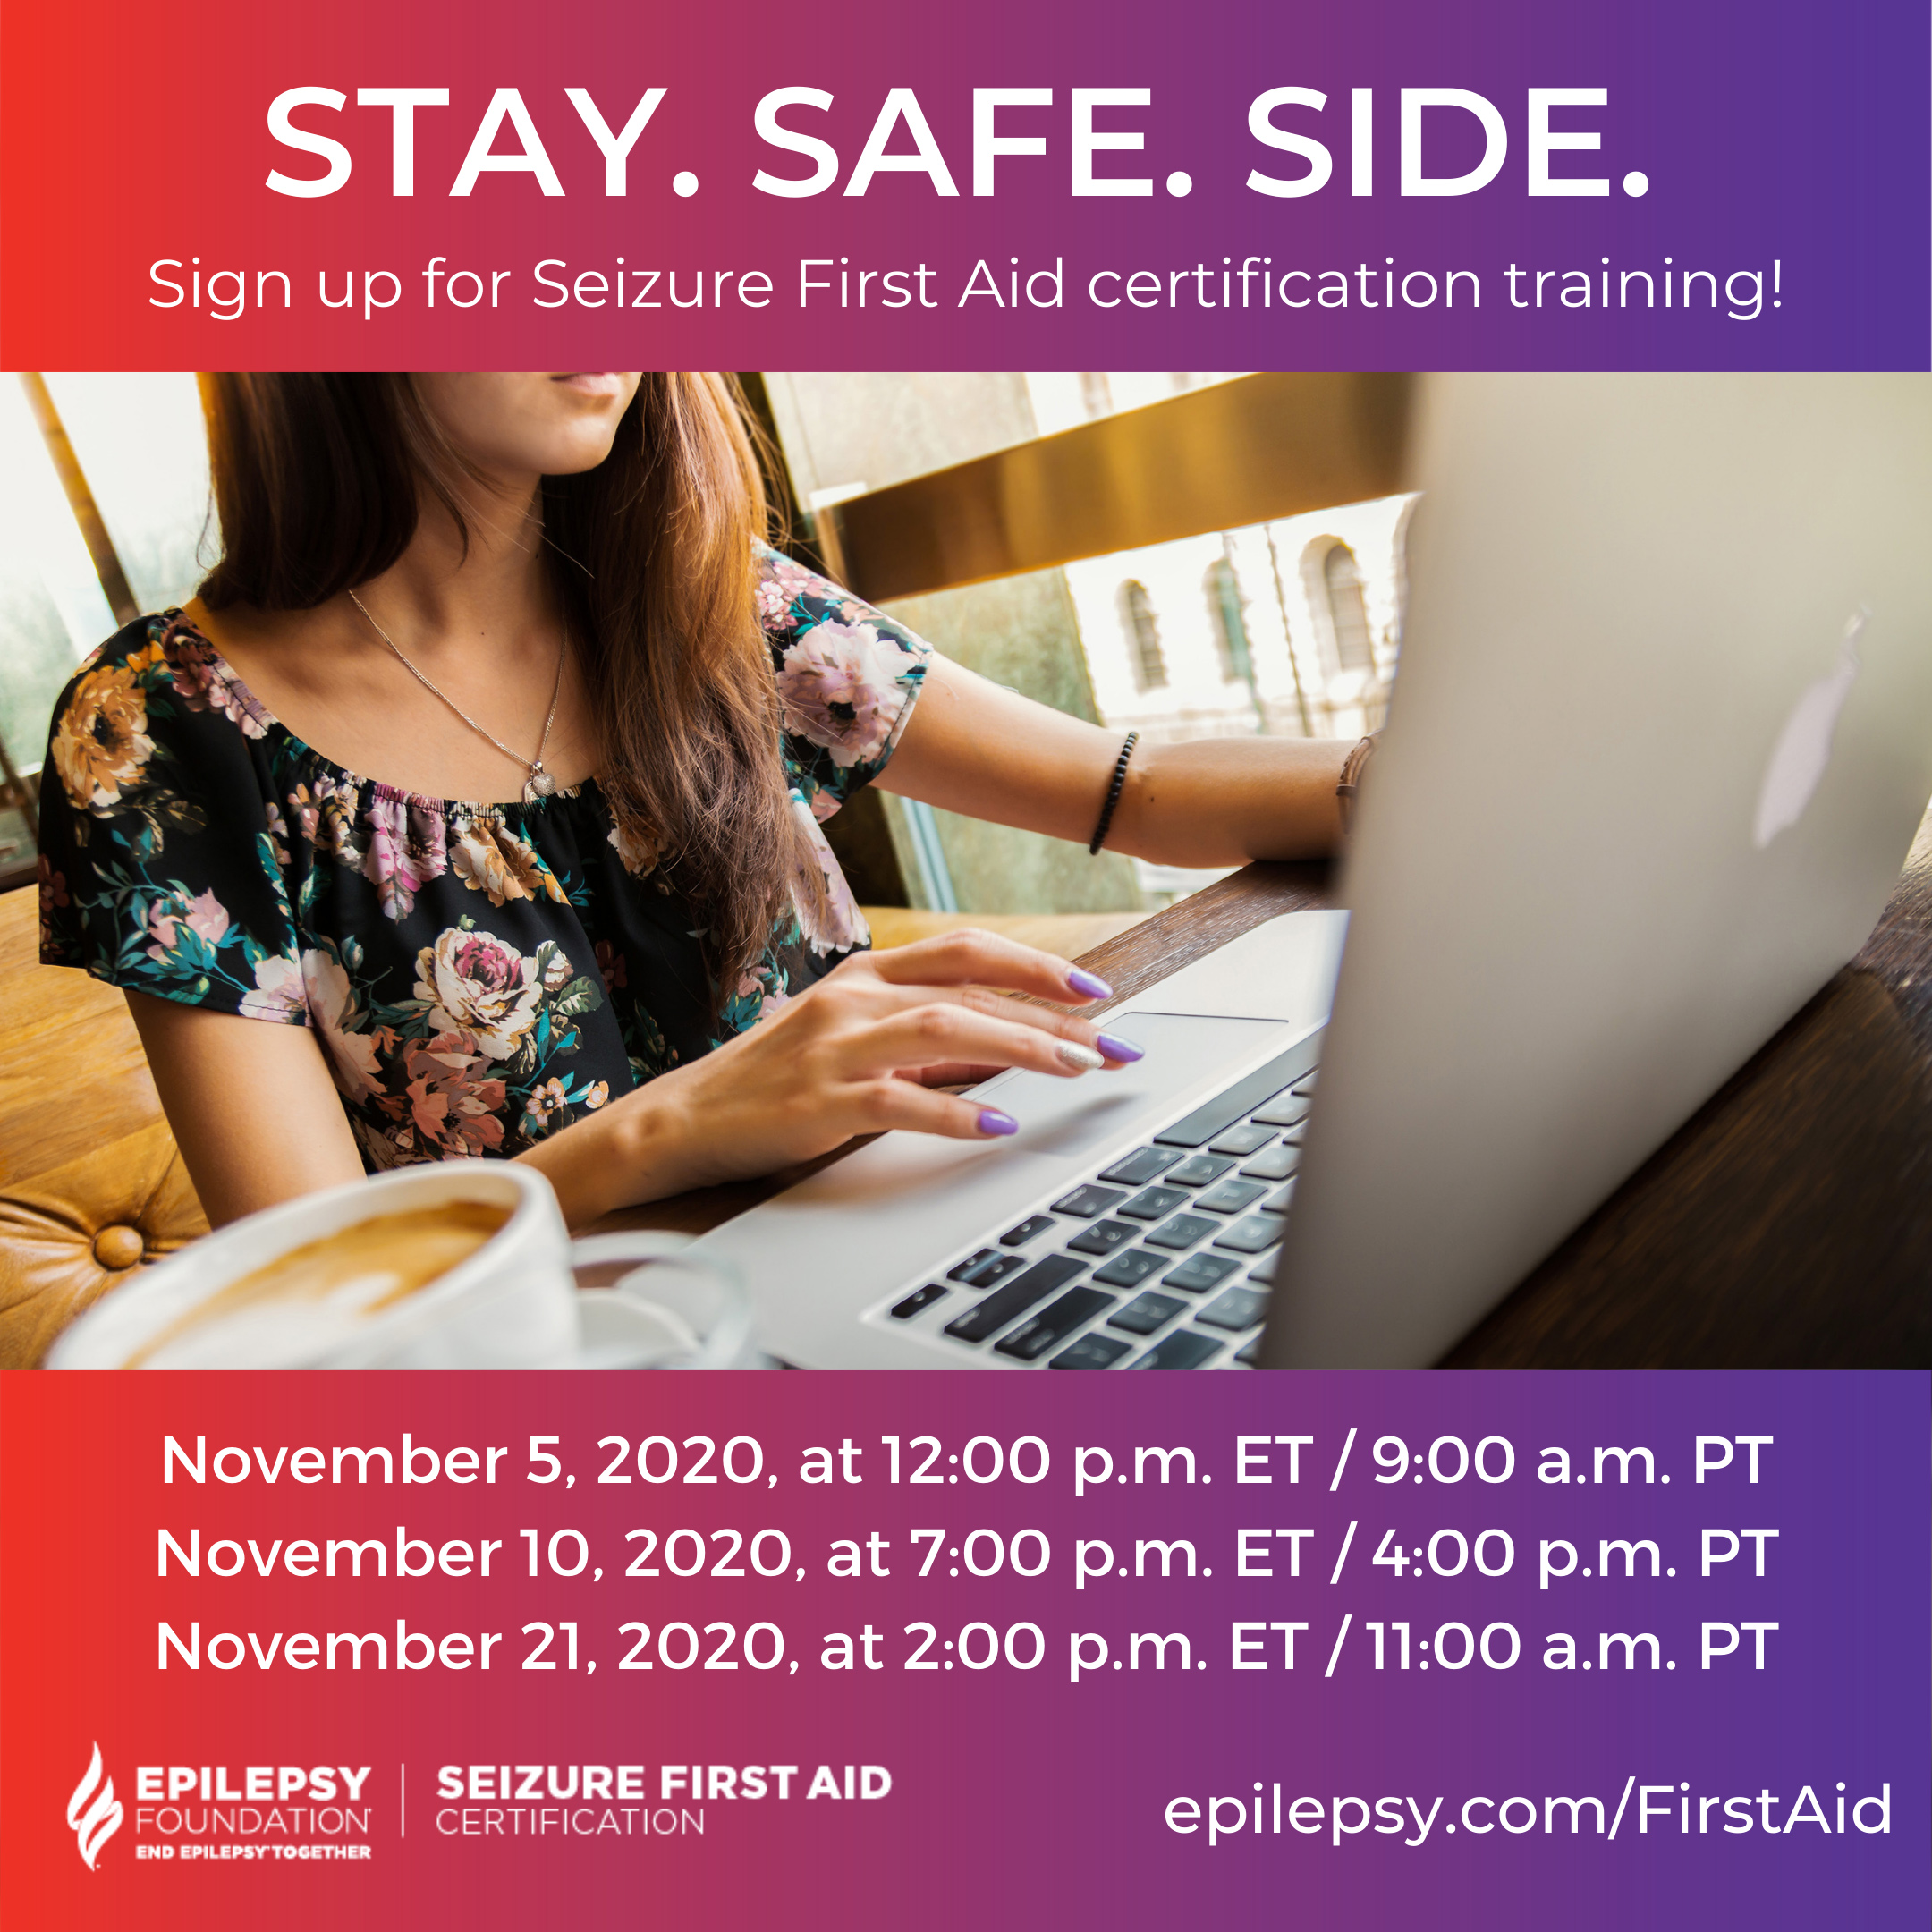 The Epilepsy Foundation is encouraging everyone to get Seizure First Aid certified this November. The Foundation is hoping to train at least 2,020 people during NEAM to increase the knowledge, skills and confidence in recognizing seizures and safely administering seizure first aid.